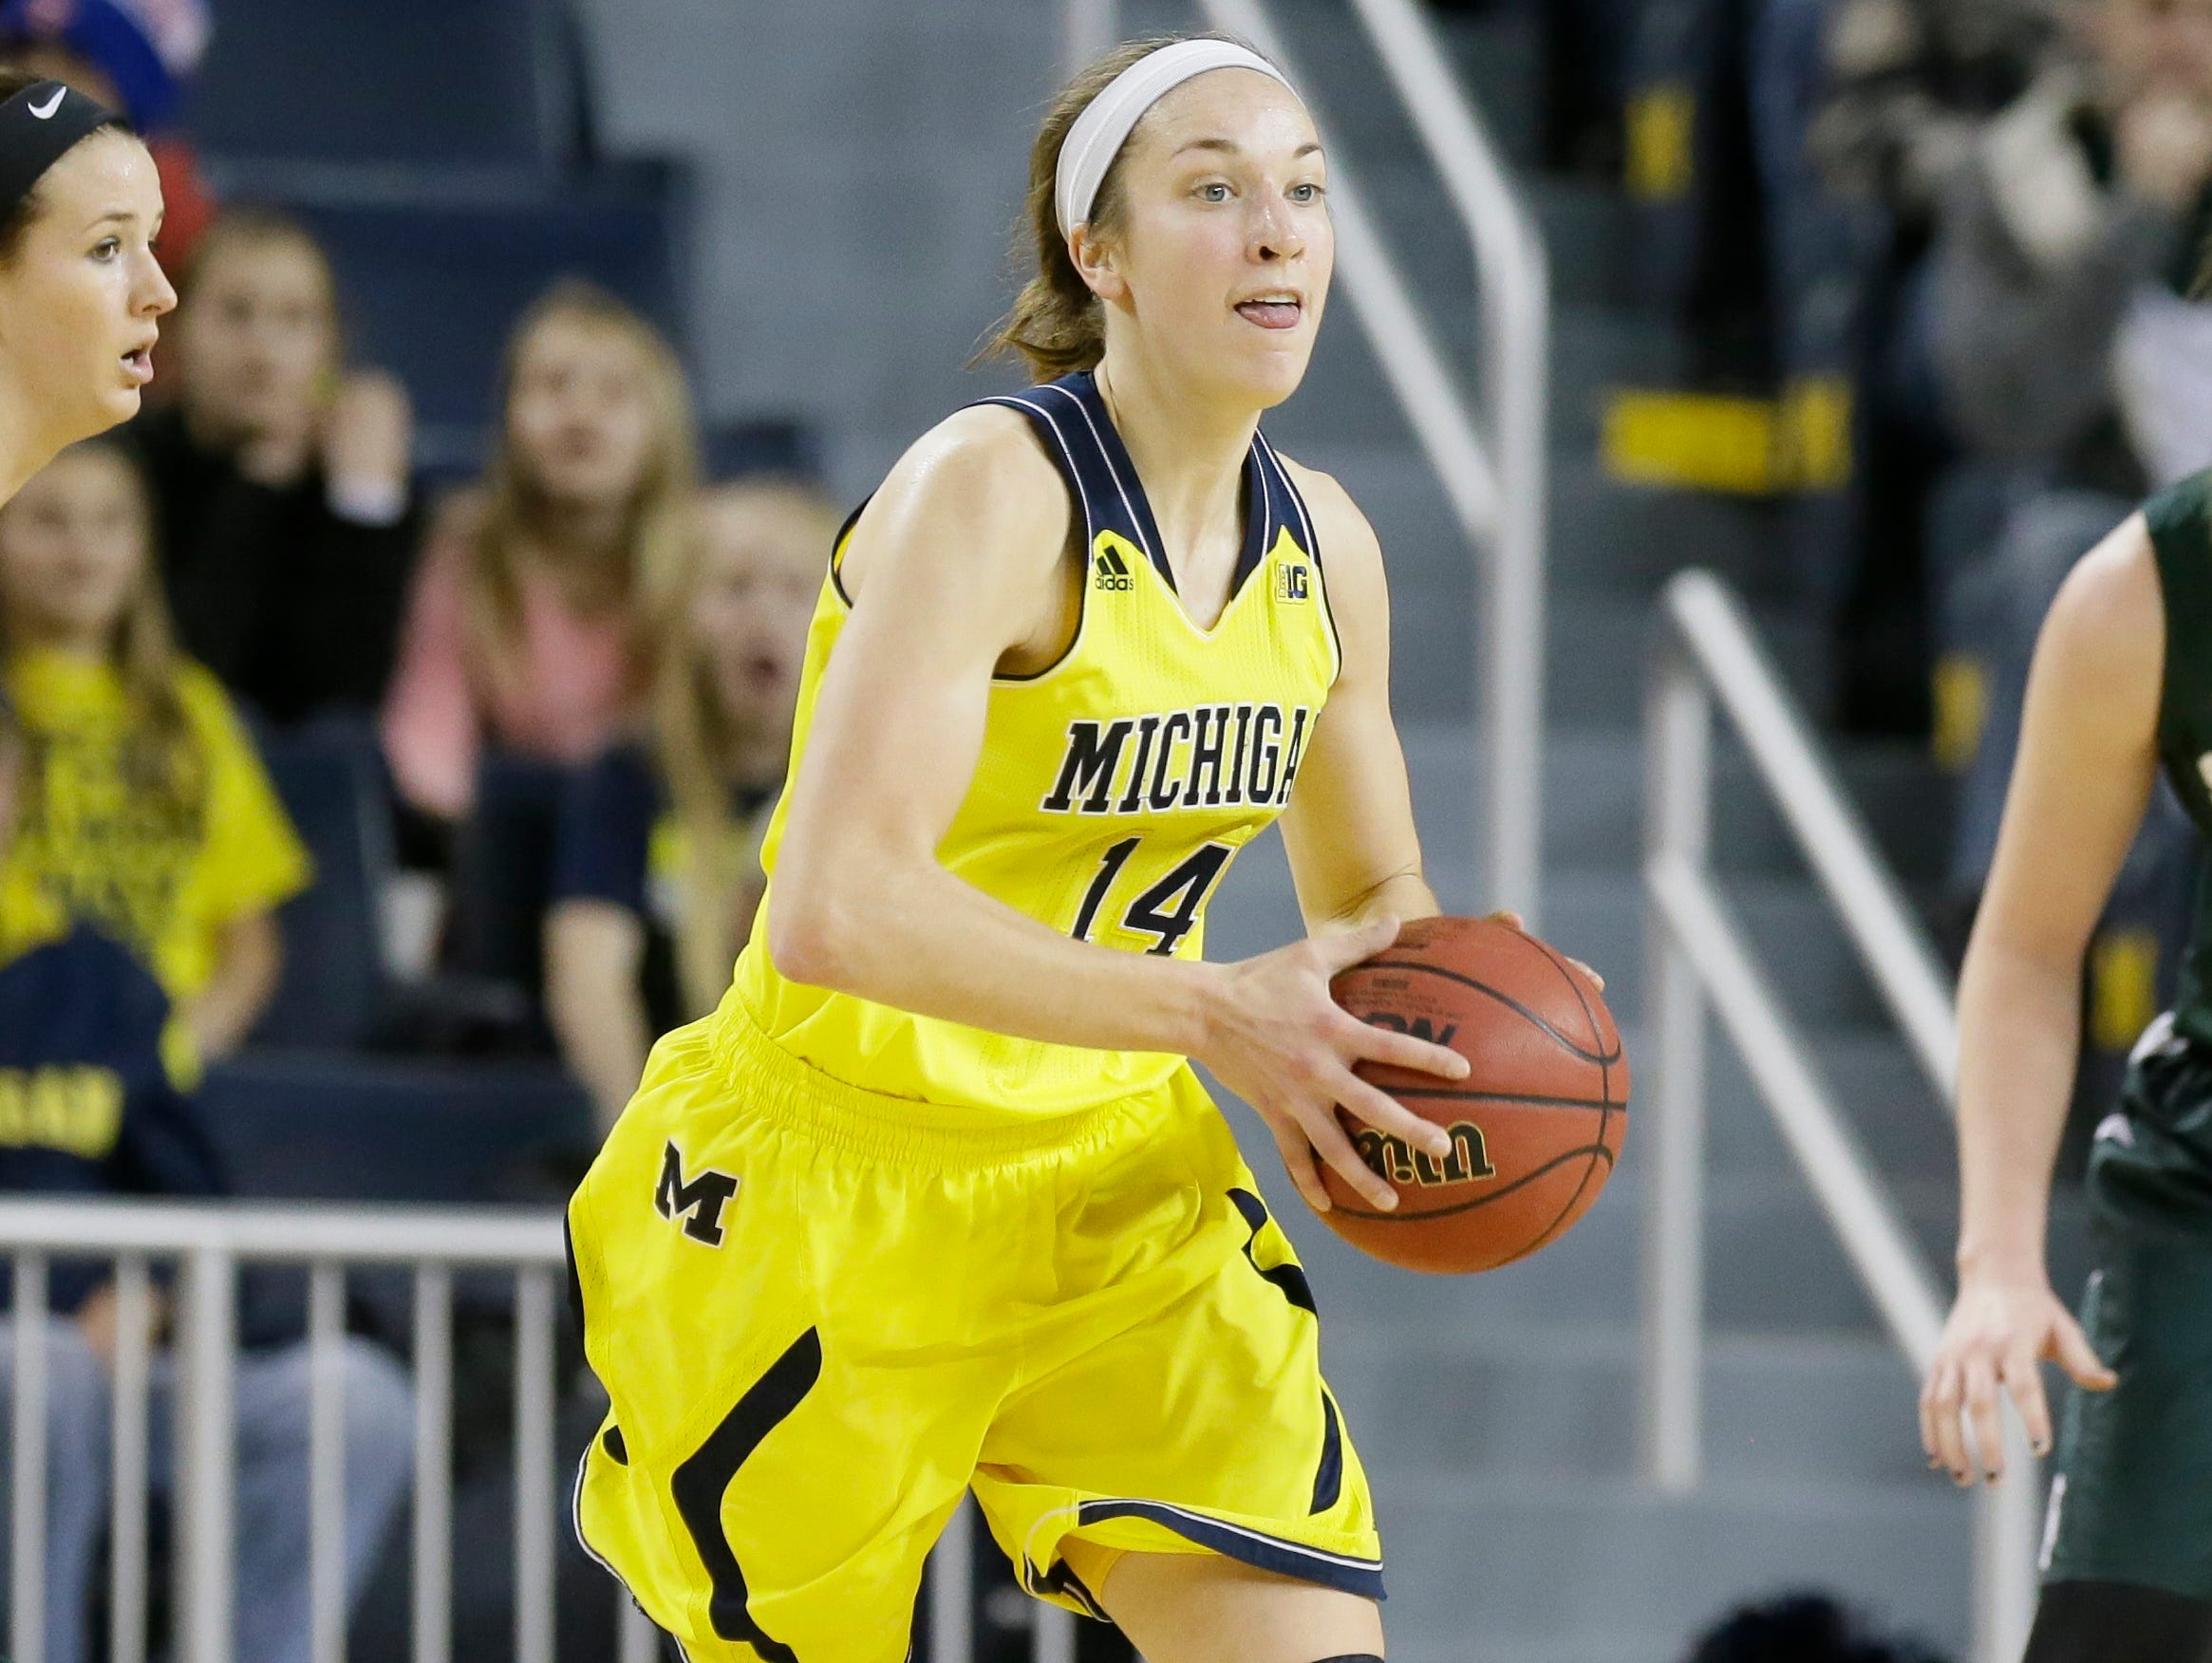 Michigan guard Nicole Elmblad passes the ball against Michigan State on Jan. 4, 2015.